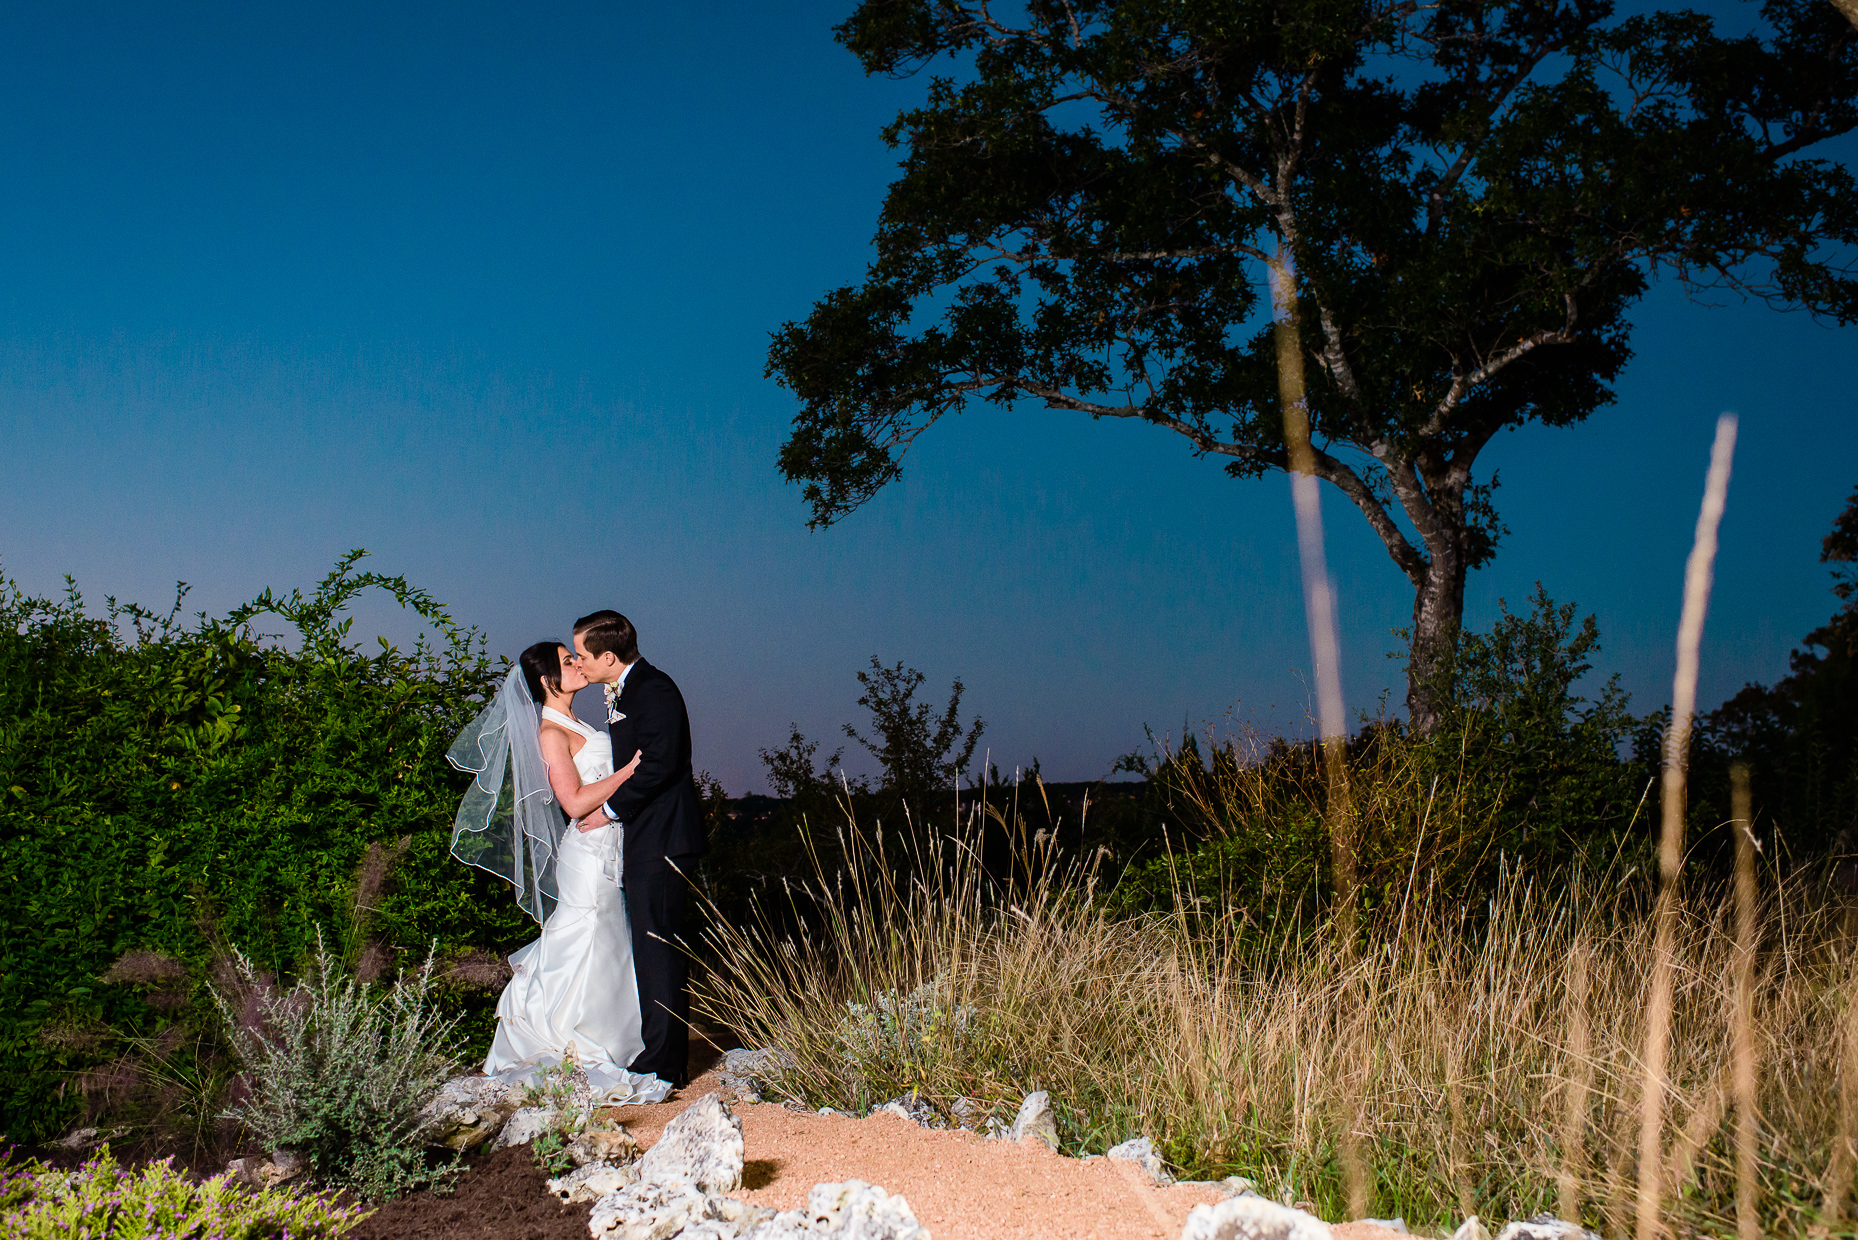 Austin-wedding-photographer-bride-groom-portrait-night